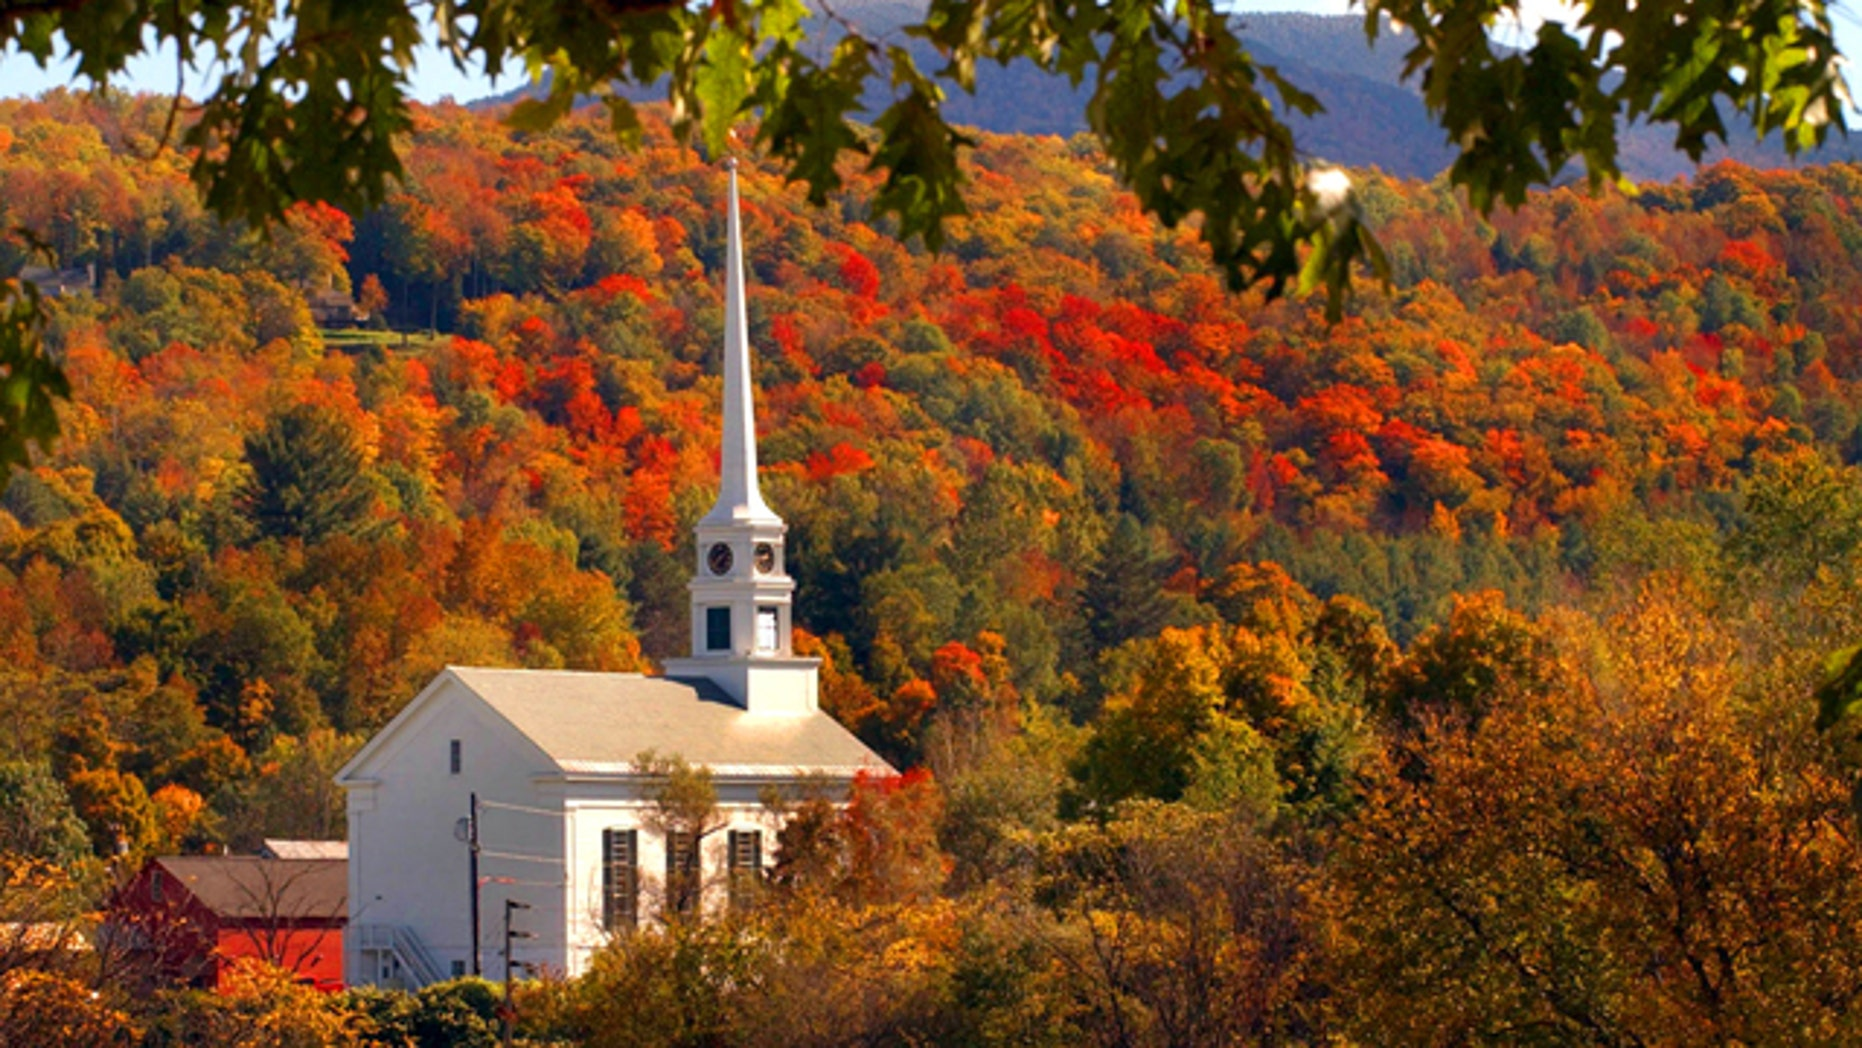 The early fall foliage frames the Stowe Community Church in Stowe, Vt., Tuesday, Oct. 5, 2004.